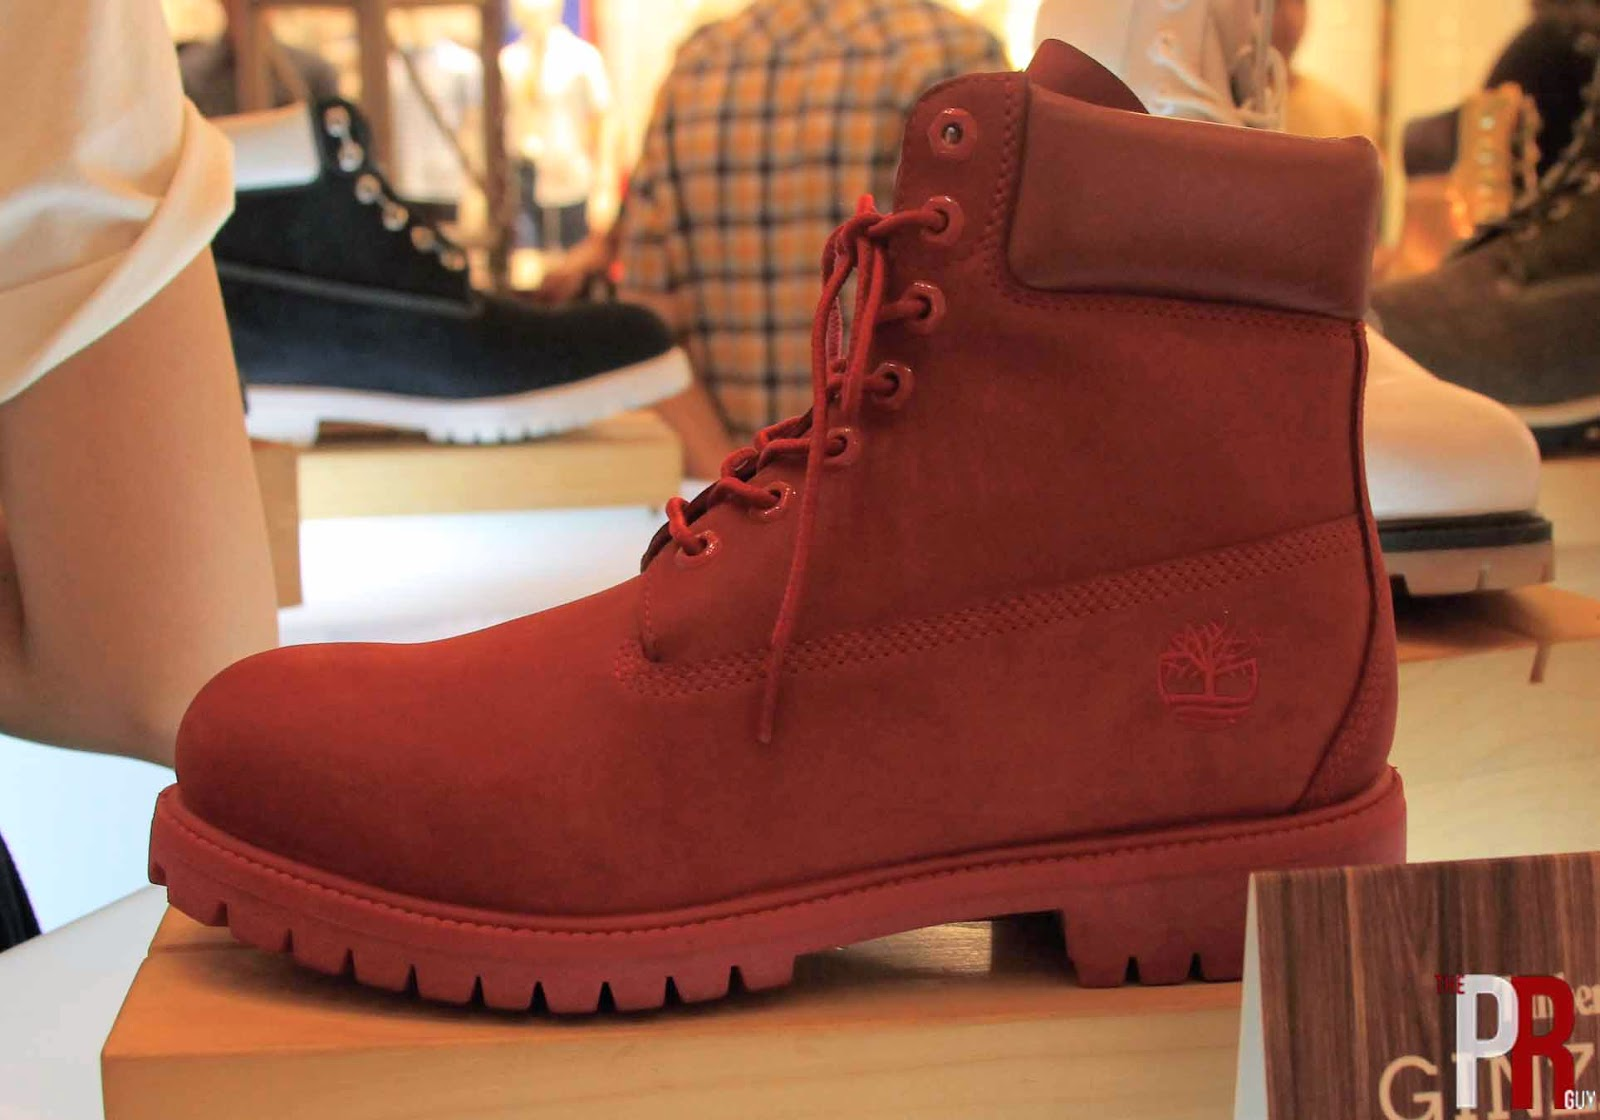 OF PHARRELL AND TIMBERLAND 4c509d140a